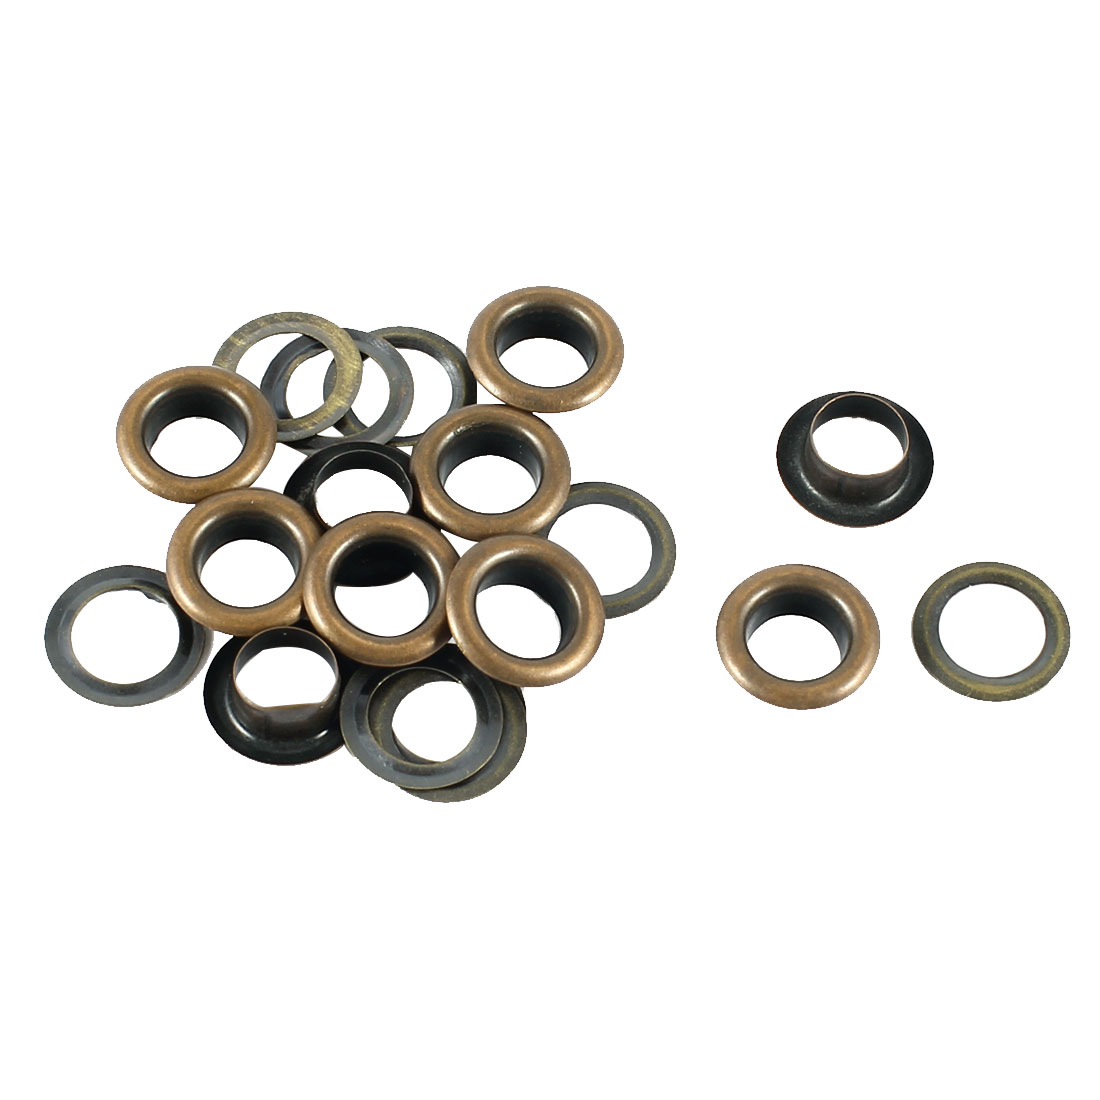 10Pcs 7mm Diameter Bronze Tone Brass Washer Grommet Eyelets for Clothes Self Backing Plier